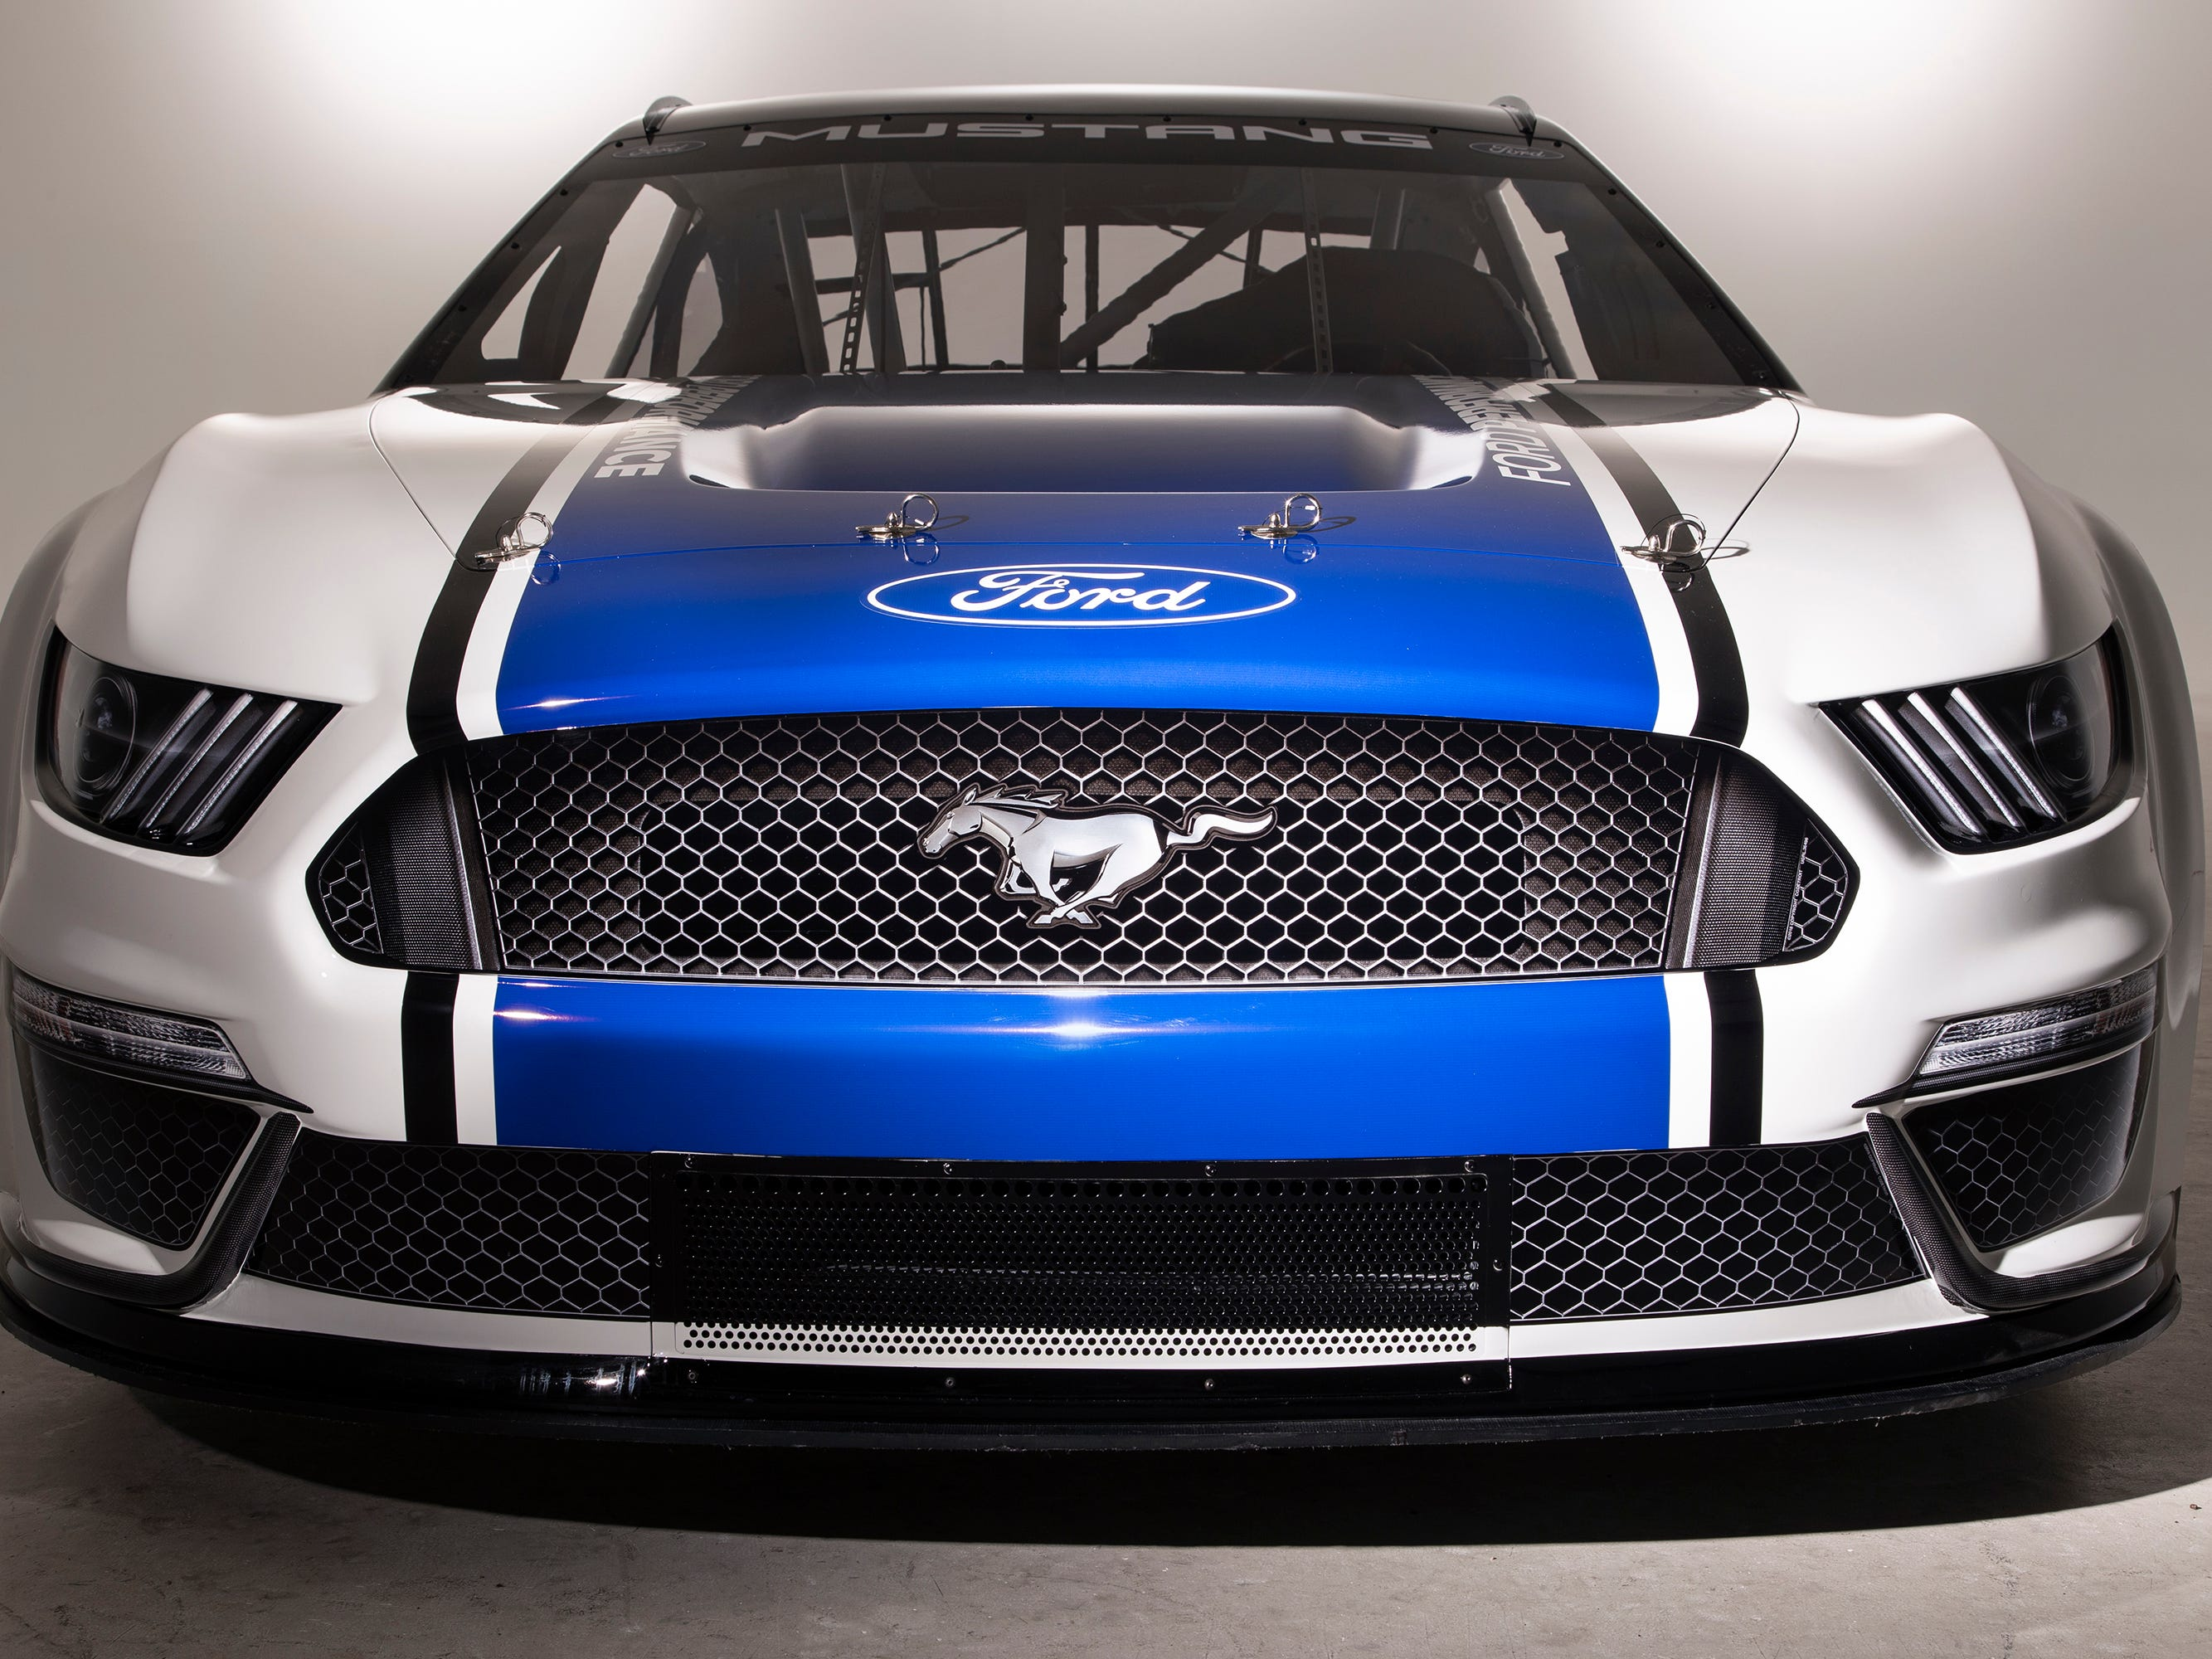 "Steve O'Donnell, NASCAR executive vice president and chief racing development officer says, ""Our sport eagerly anticipates the performance, style and fanfare the Mustang will bring to the track each weekend beginning at the 2019 Daytona 500."""